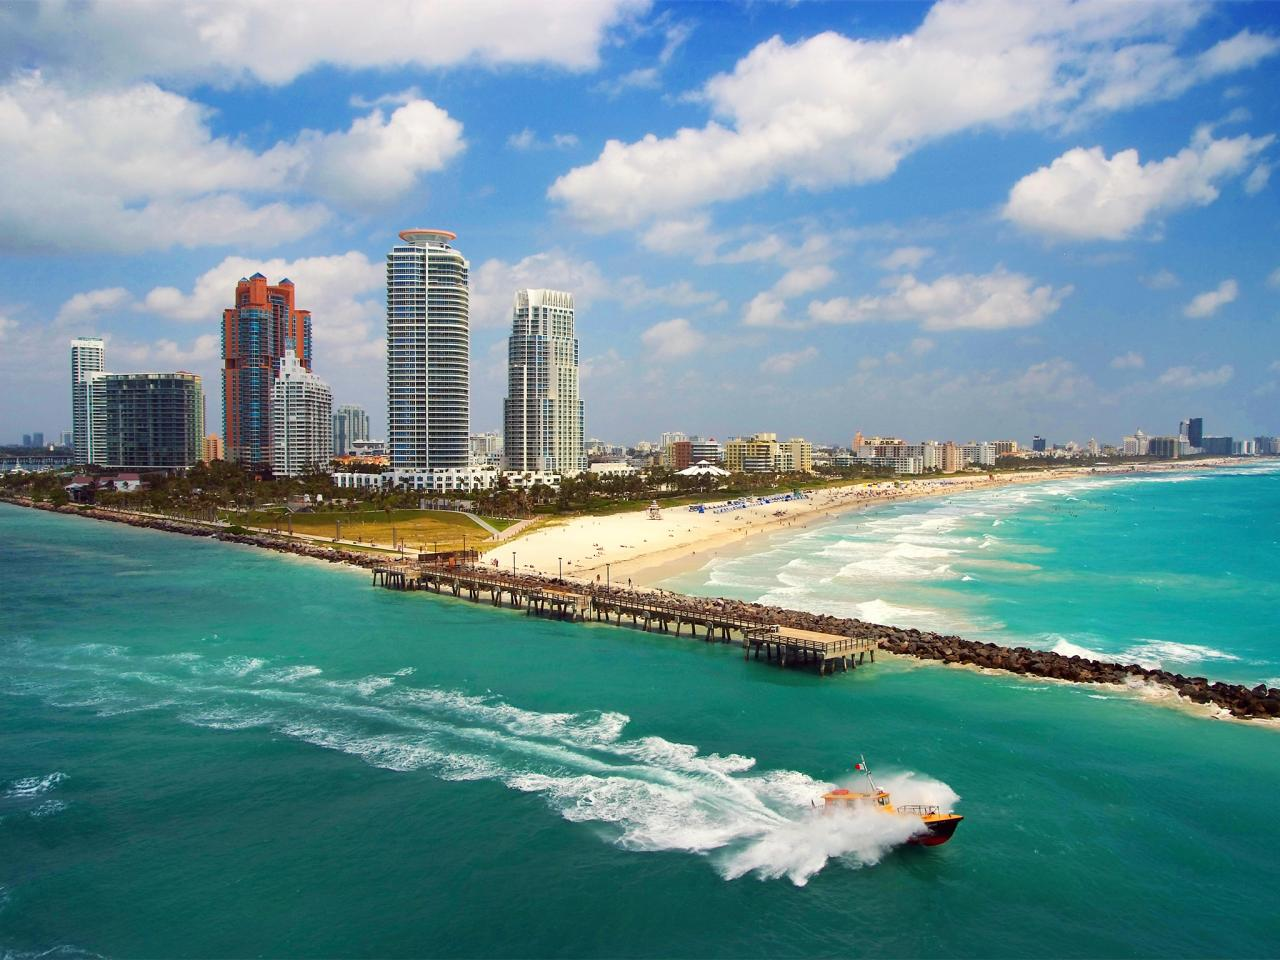 South Beach Florida is nice year-round